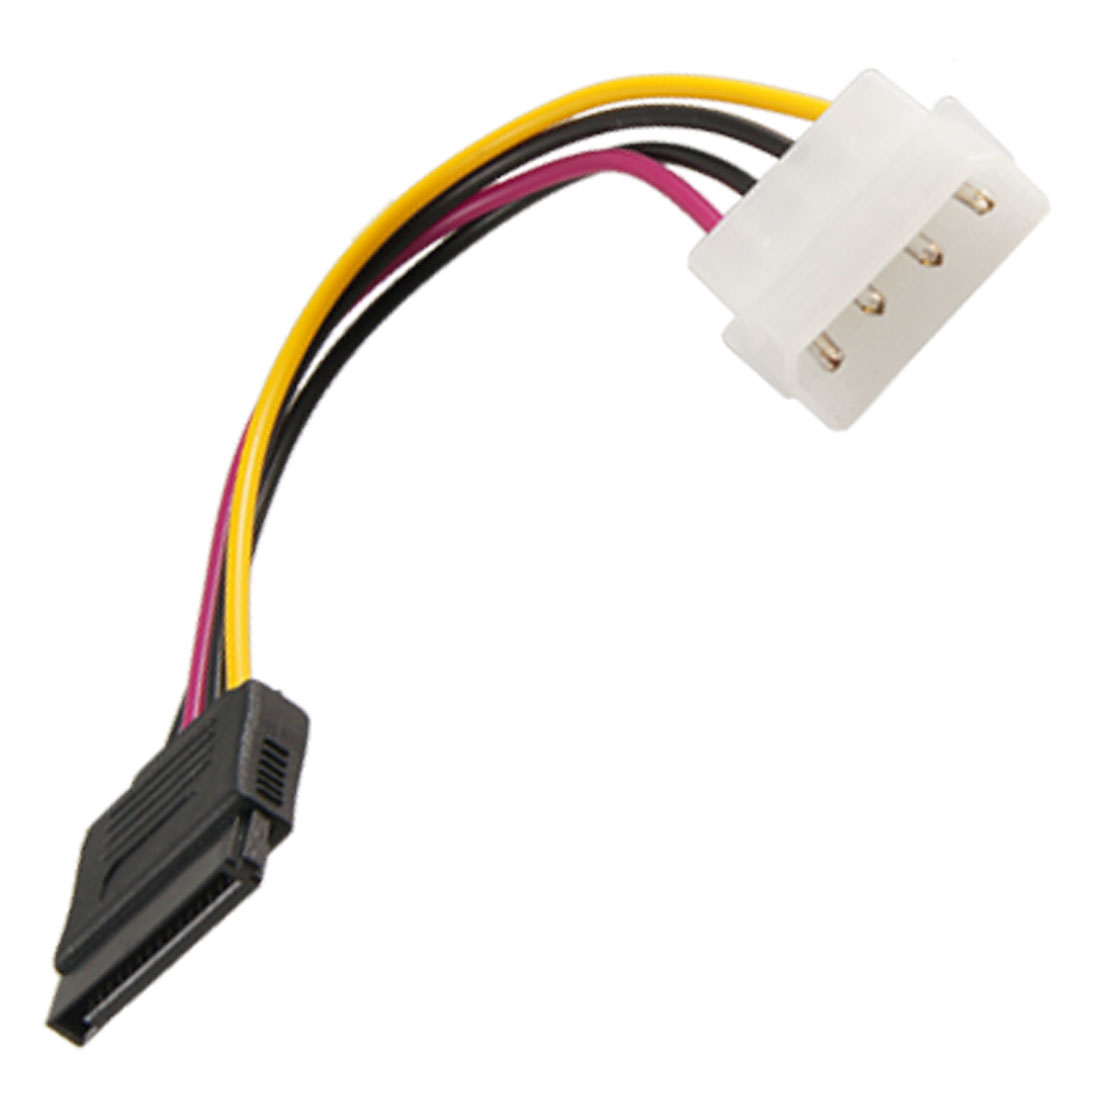 17cm 4 Pin IDE to 15 Pin Female SATA Adapter Power Cable Cord